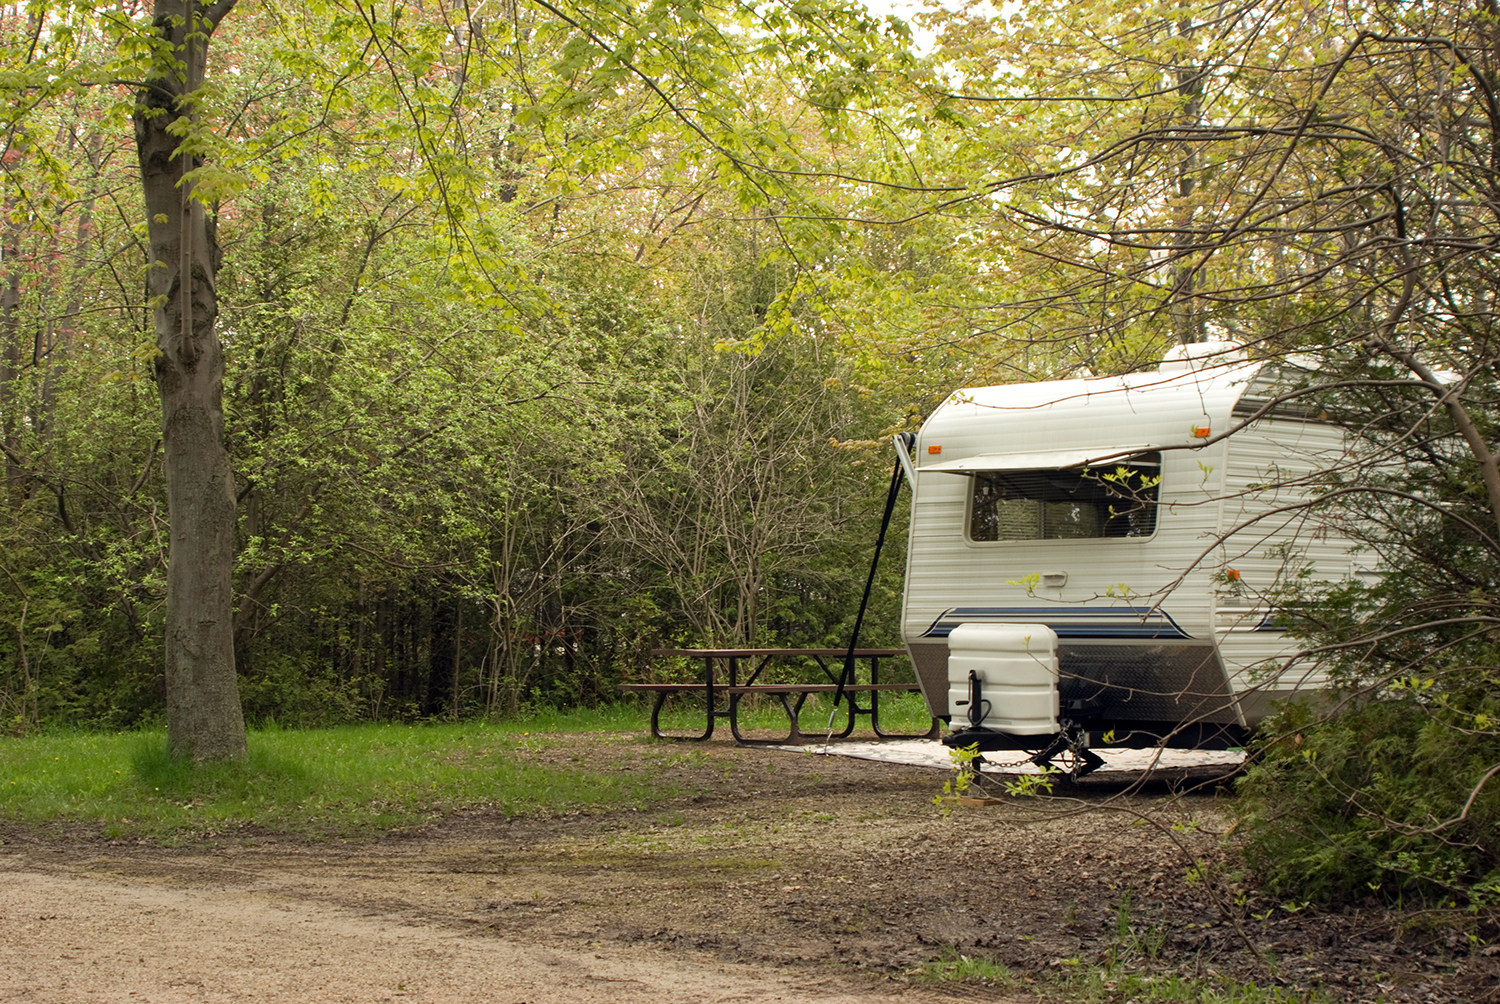 A travel trailer camping under green trees